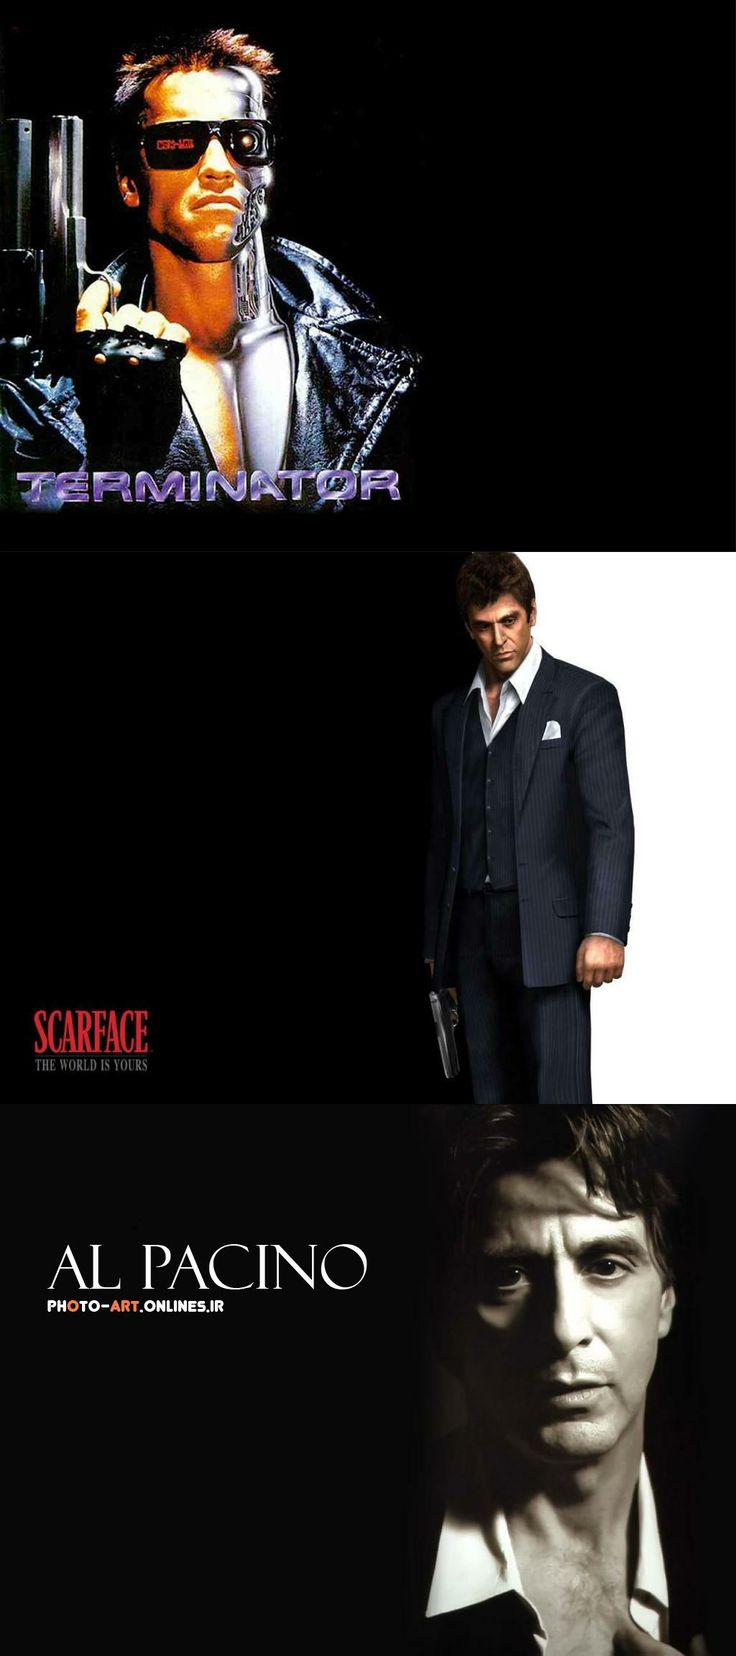 M s de 25 ideas incre bles sobre scarface poster en for Occhiali al pacino scarface